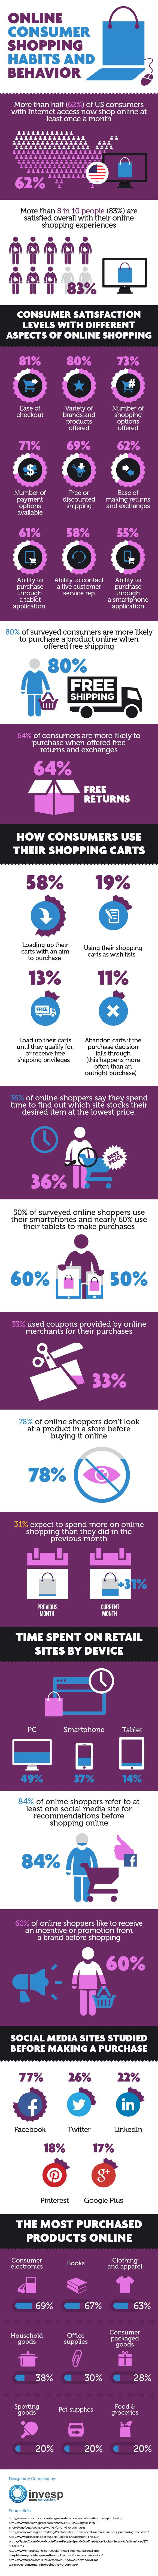 Online Consumer Shopping Habits and Behavior image online consumer shopping habbits2